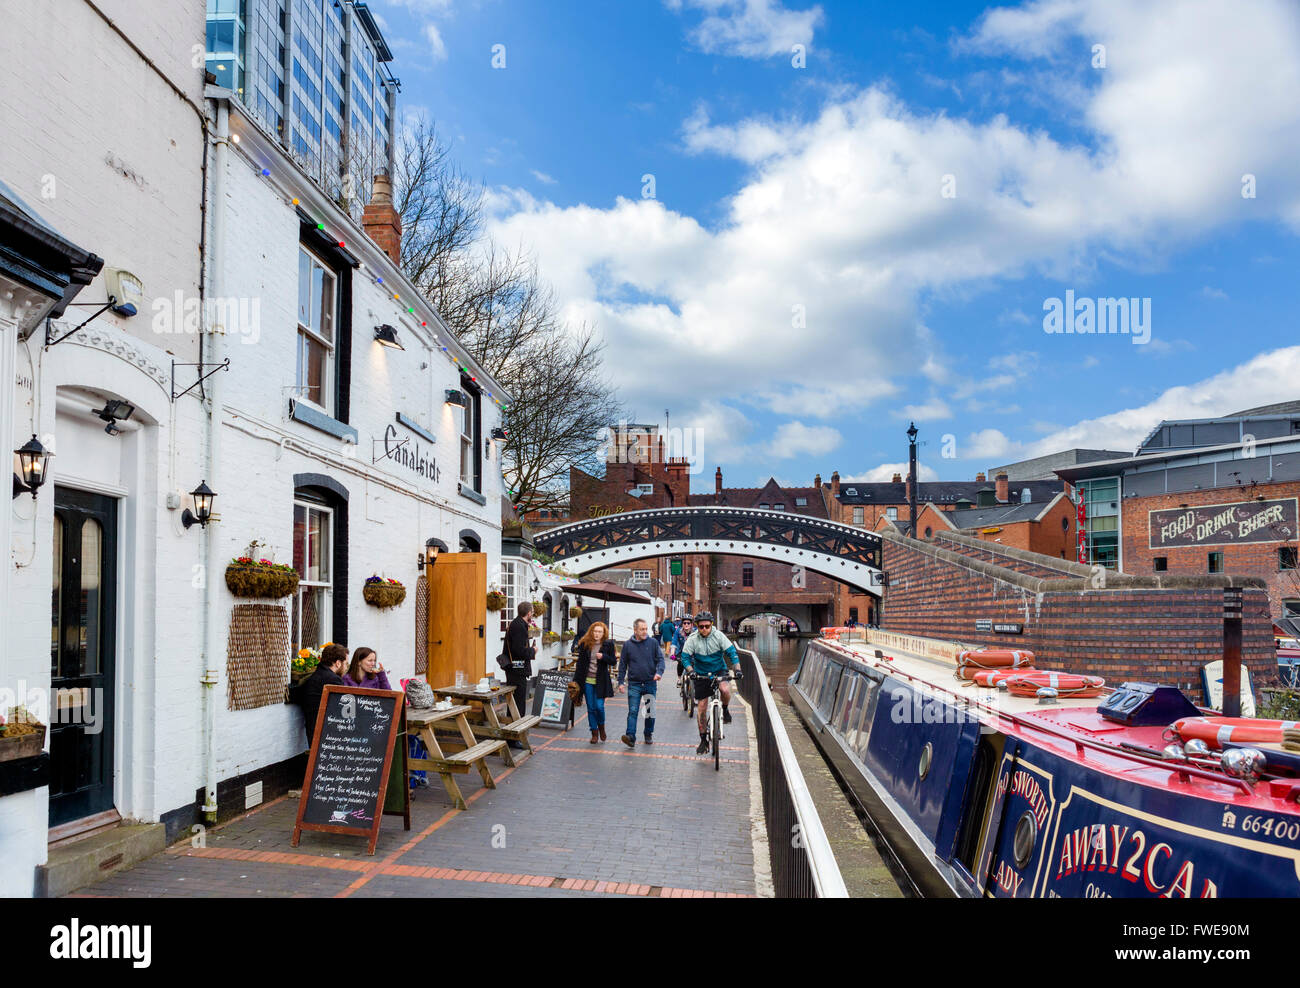 Canalside Cafe alongside the canal at Gas Street canal basin, Birmingham, West Midlands, England, UK - Stock Image